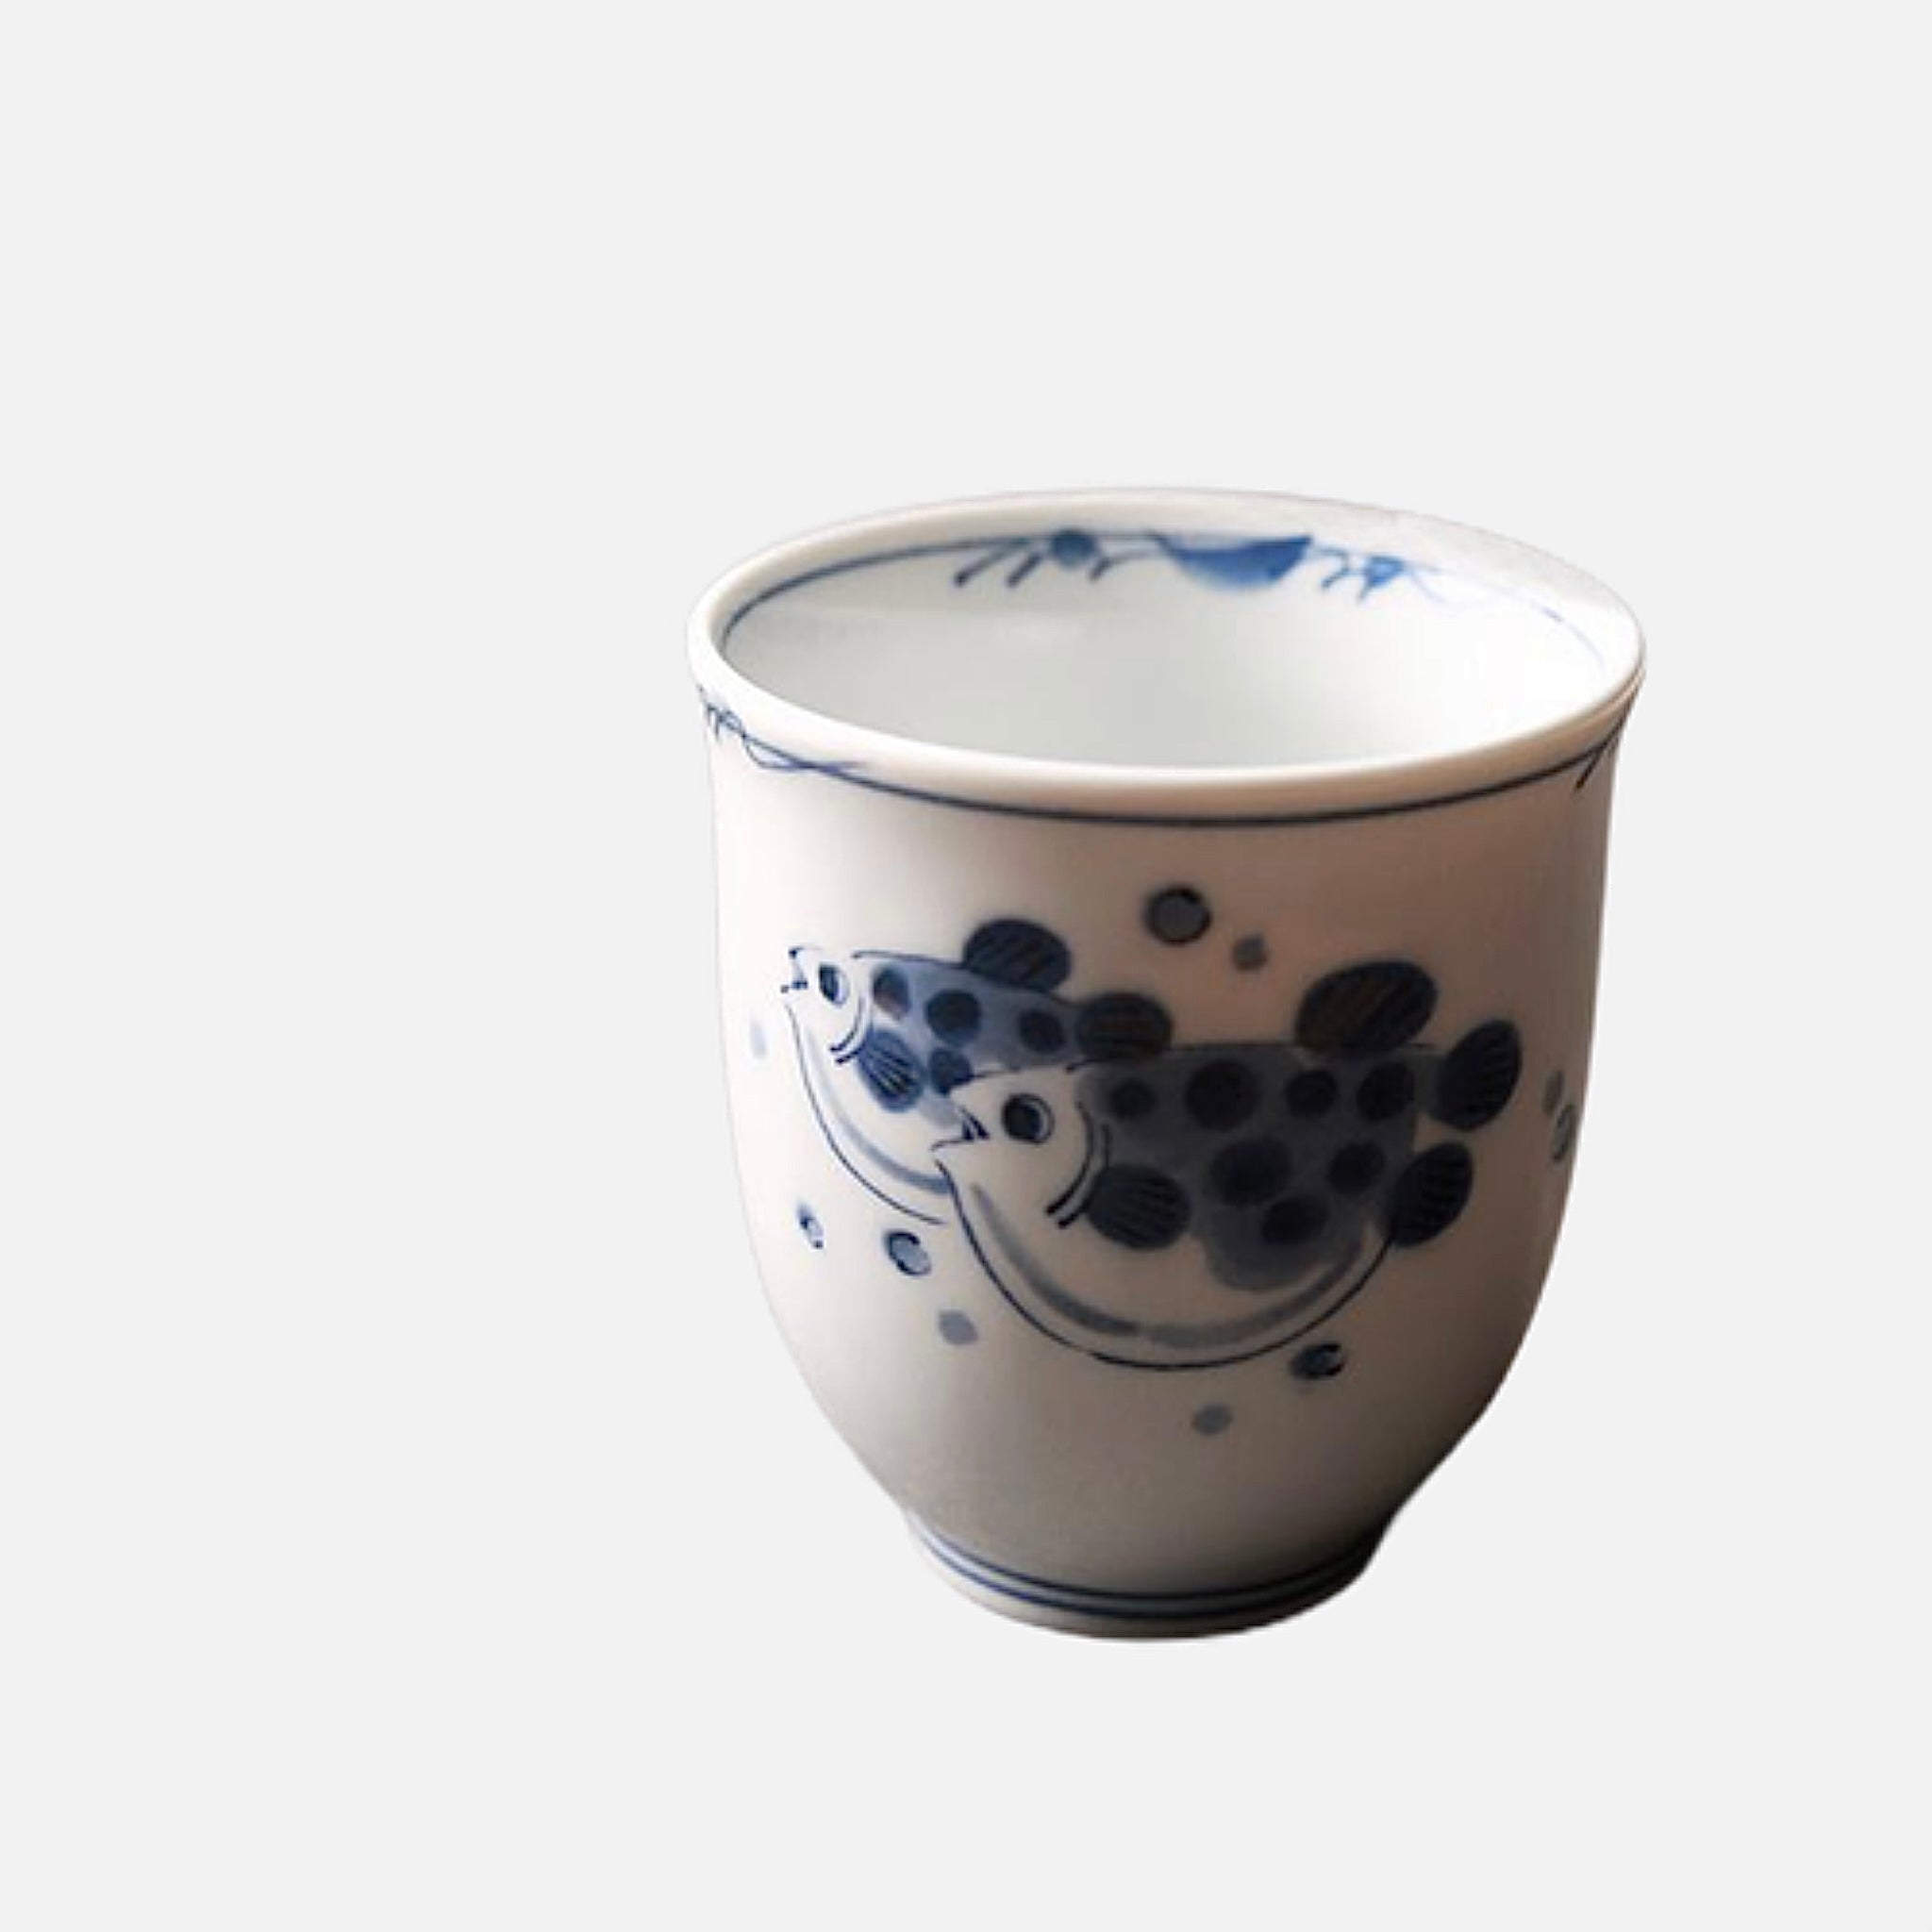 Japanese Fish Ceramic Sake Cup Trend